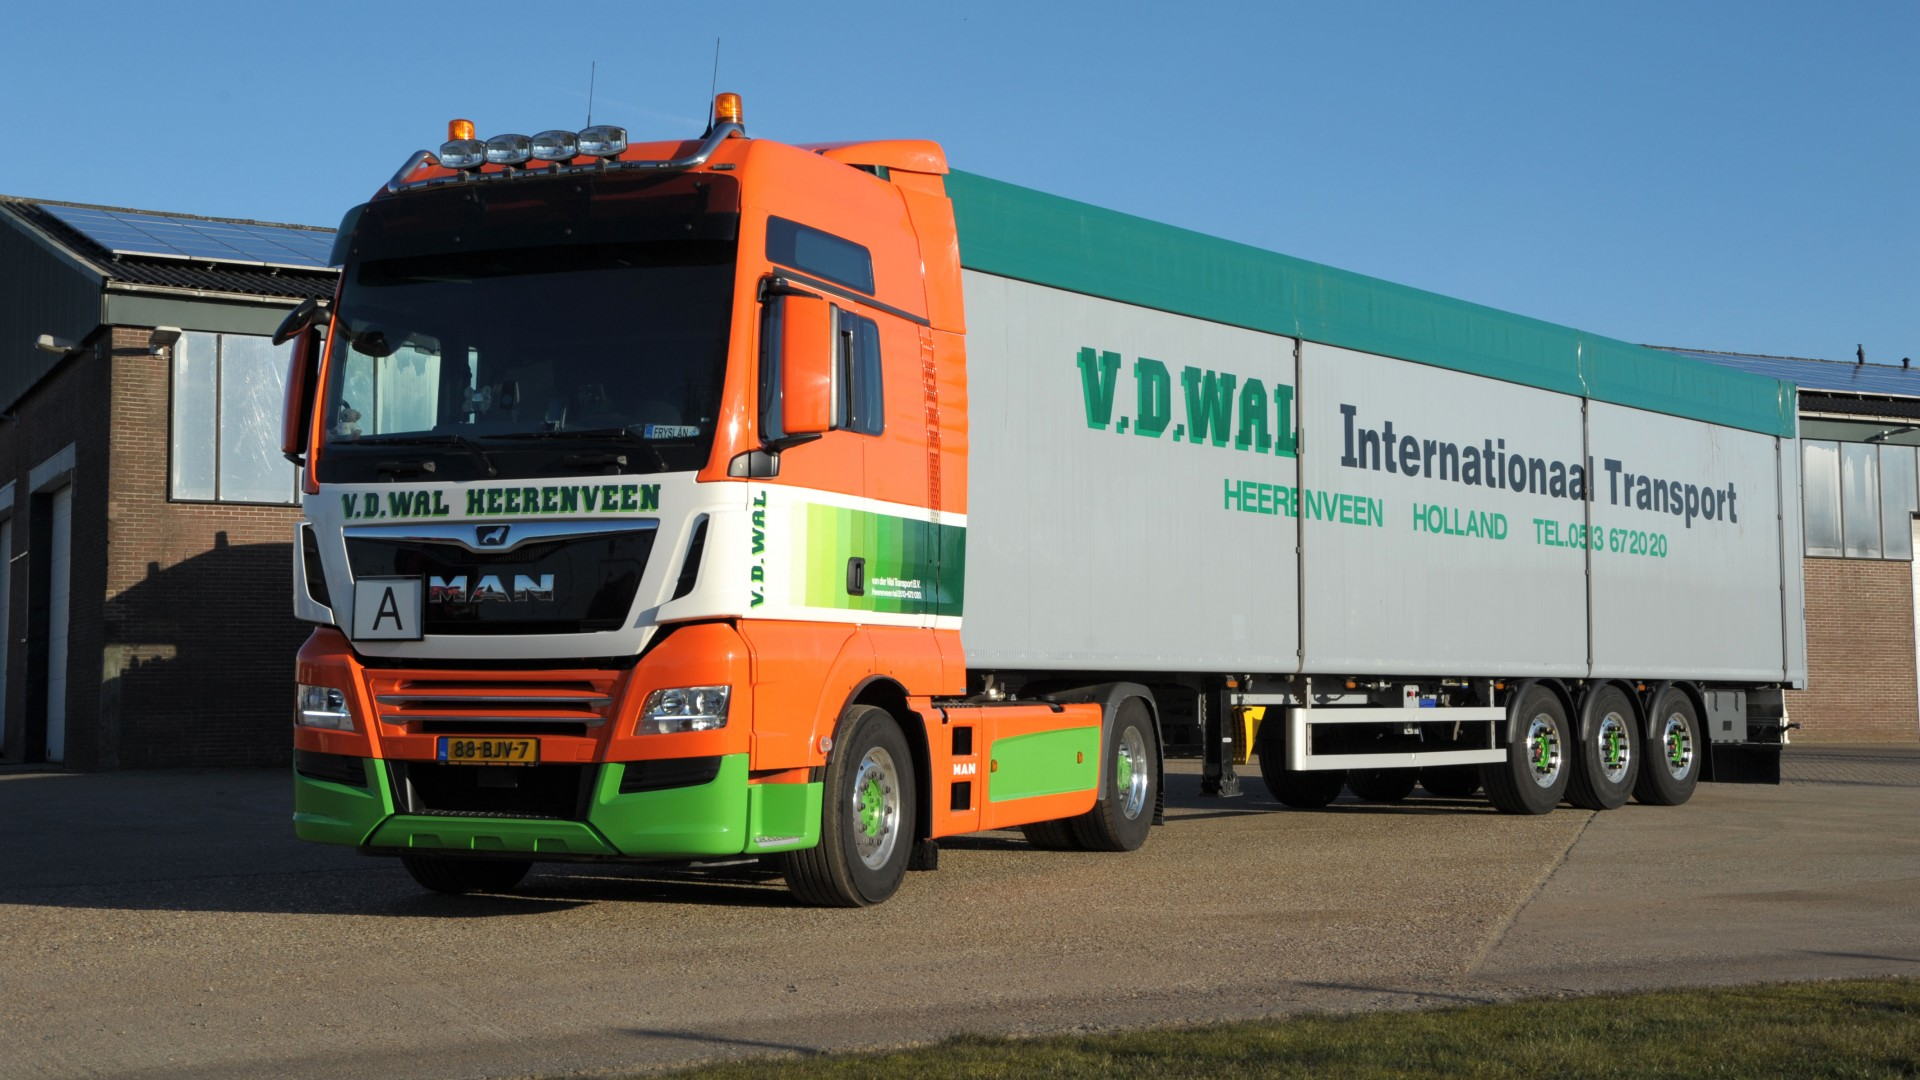 V.D. Wal Internationaal Transport